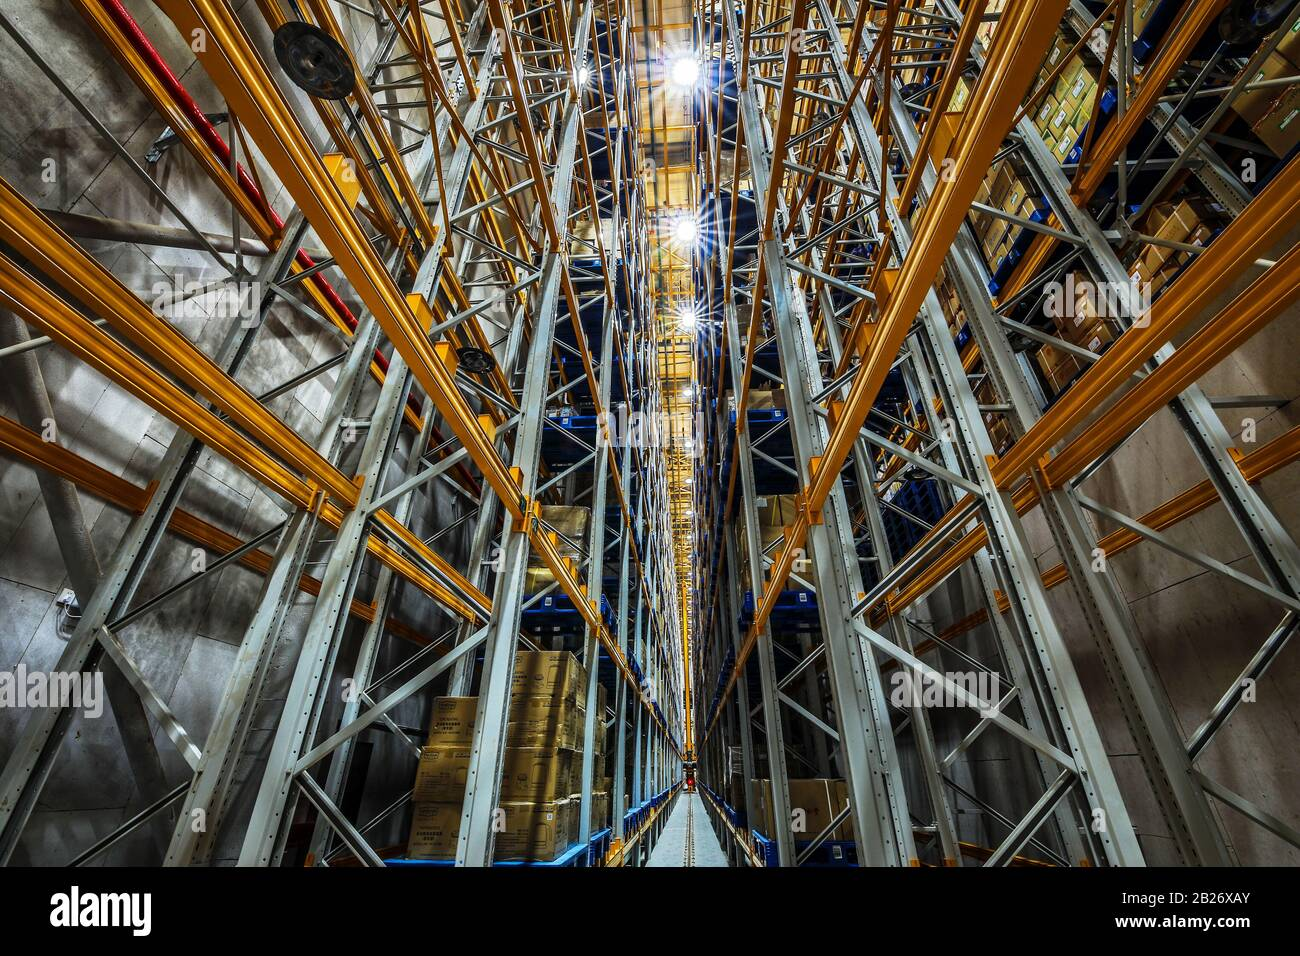 BEIJING, CHINA - JUNE 03, 2019: Modern automation of warehouse production in China. Stock Photo